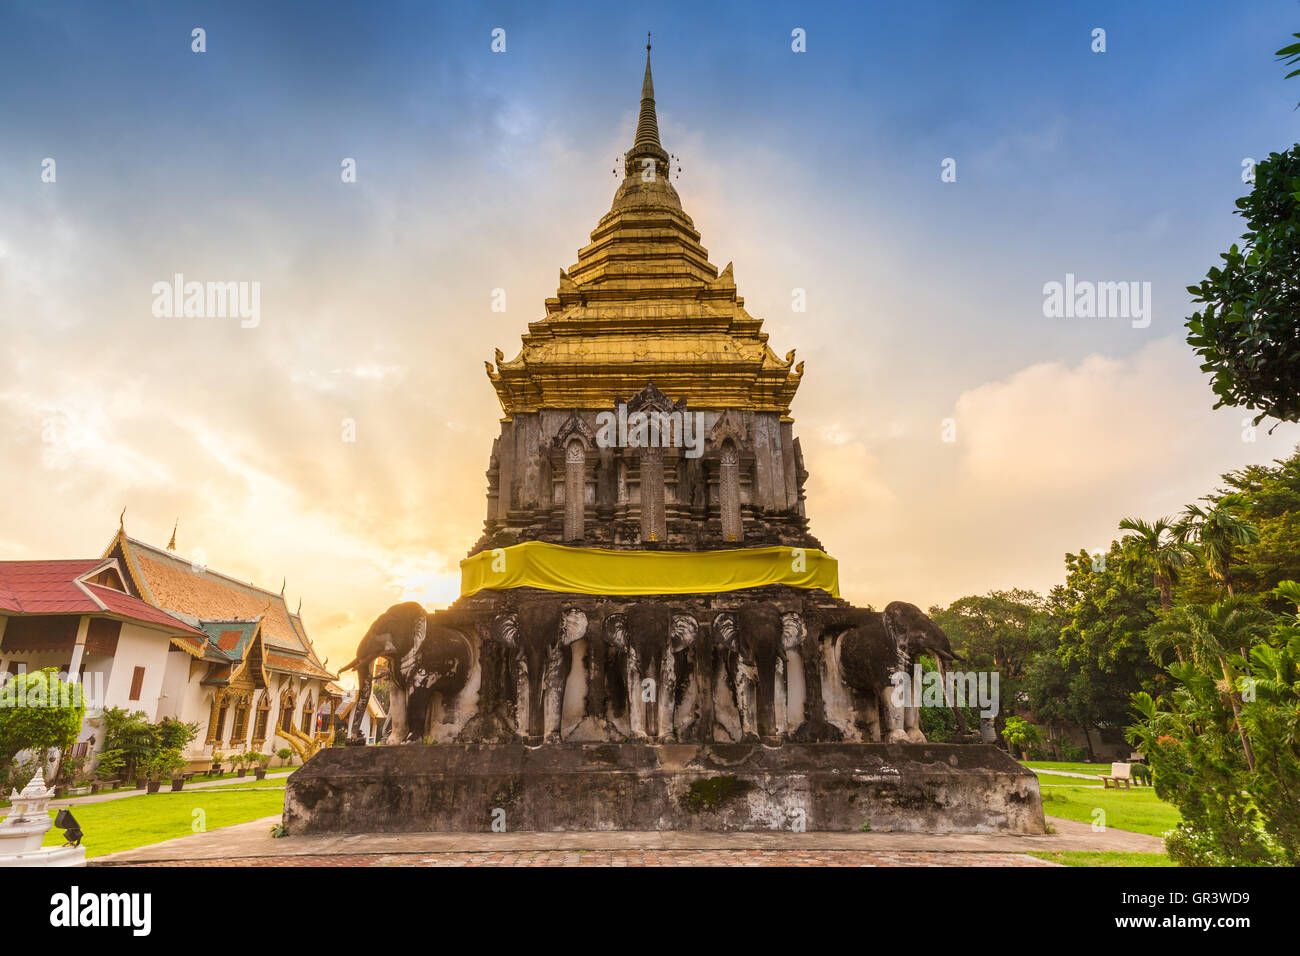 Wat Chiang Man at sunrise, the oldest temple in Chiang Mai, Thailand. - Stock Image